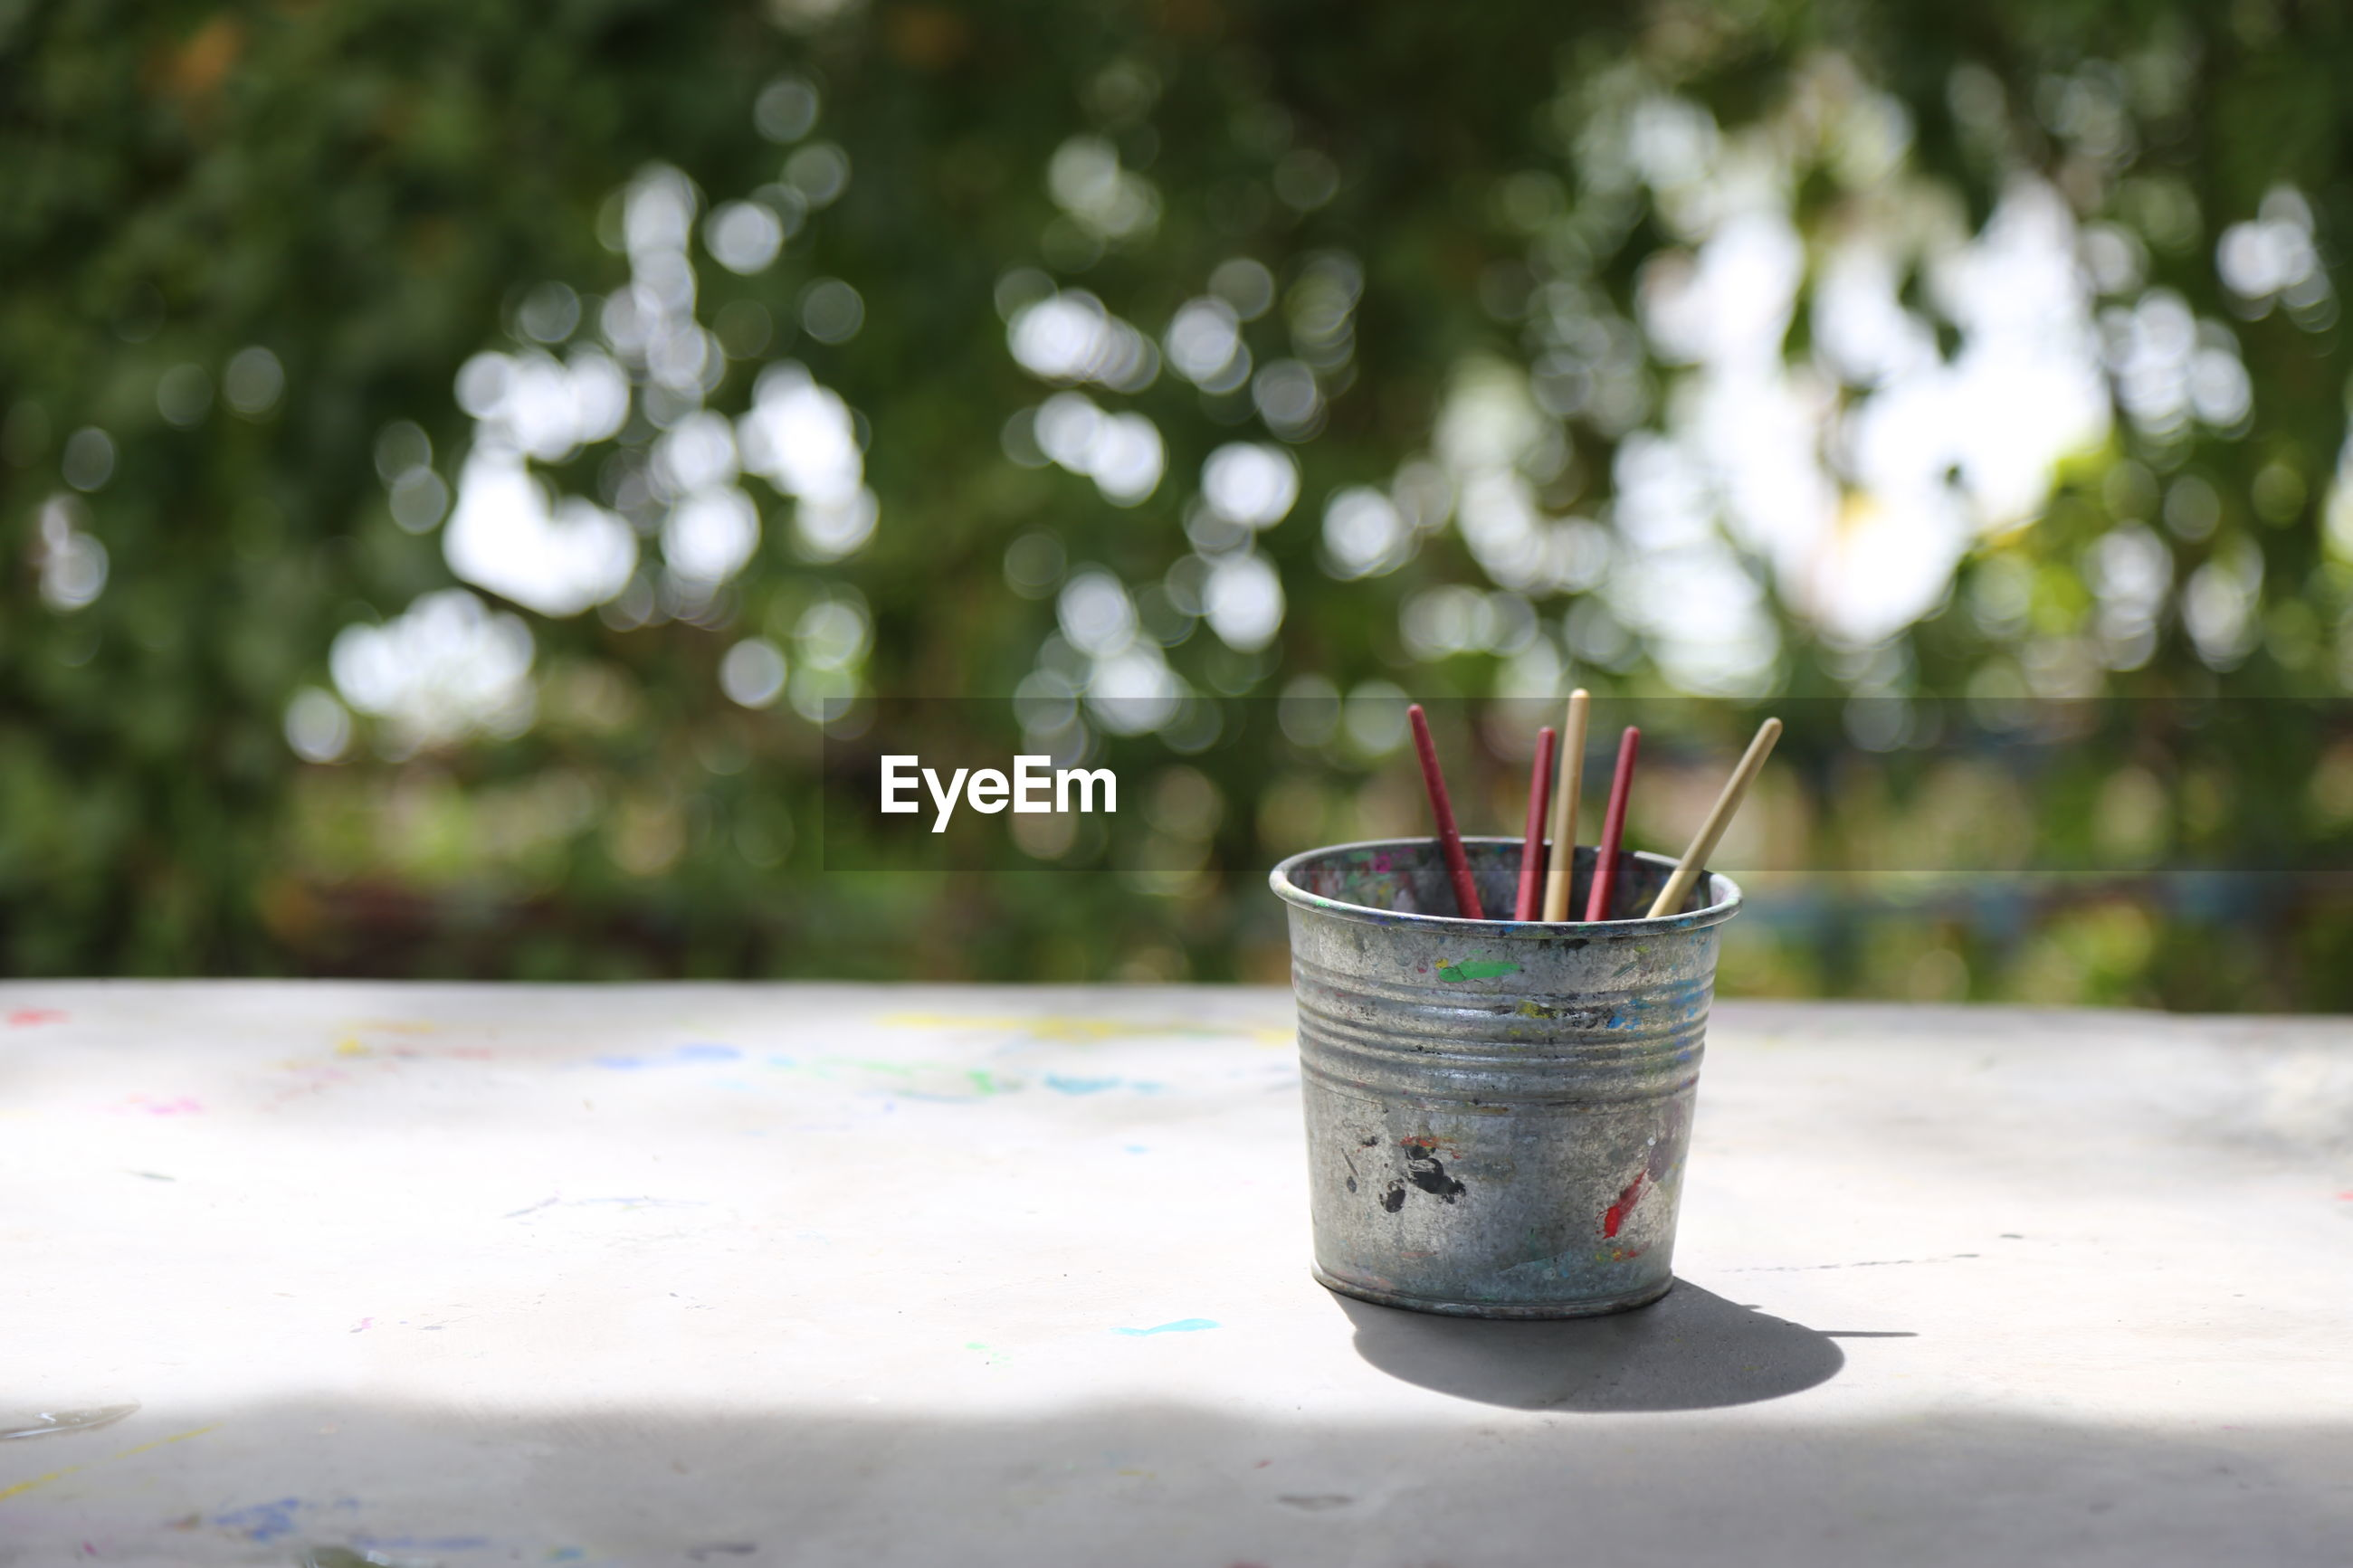 Paintbrushes in container against trees